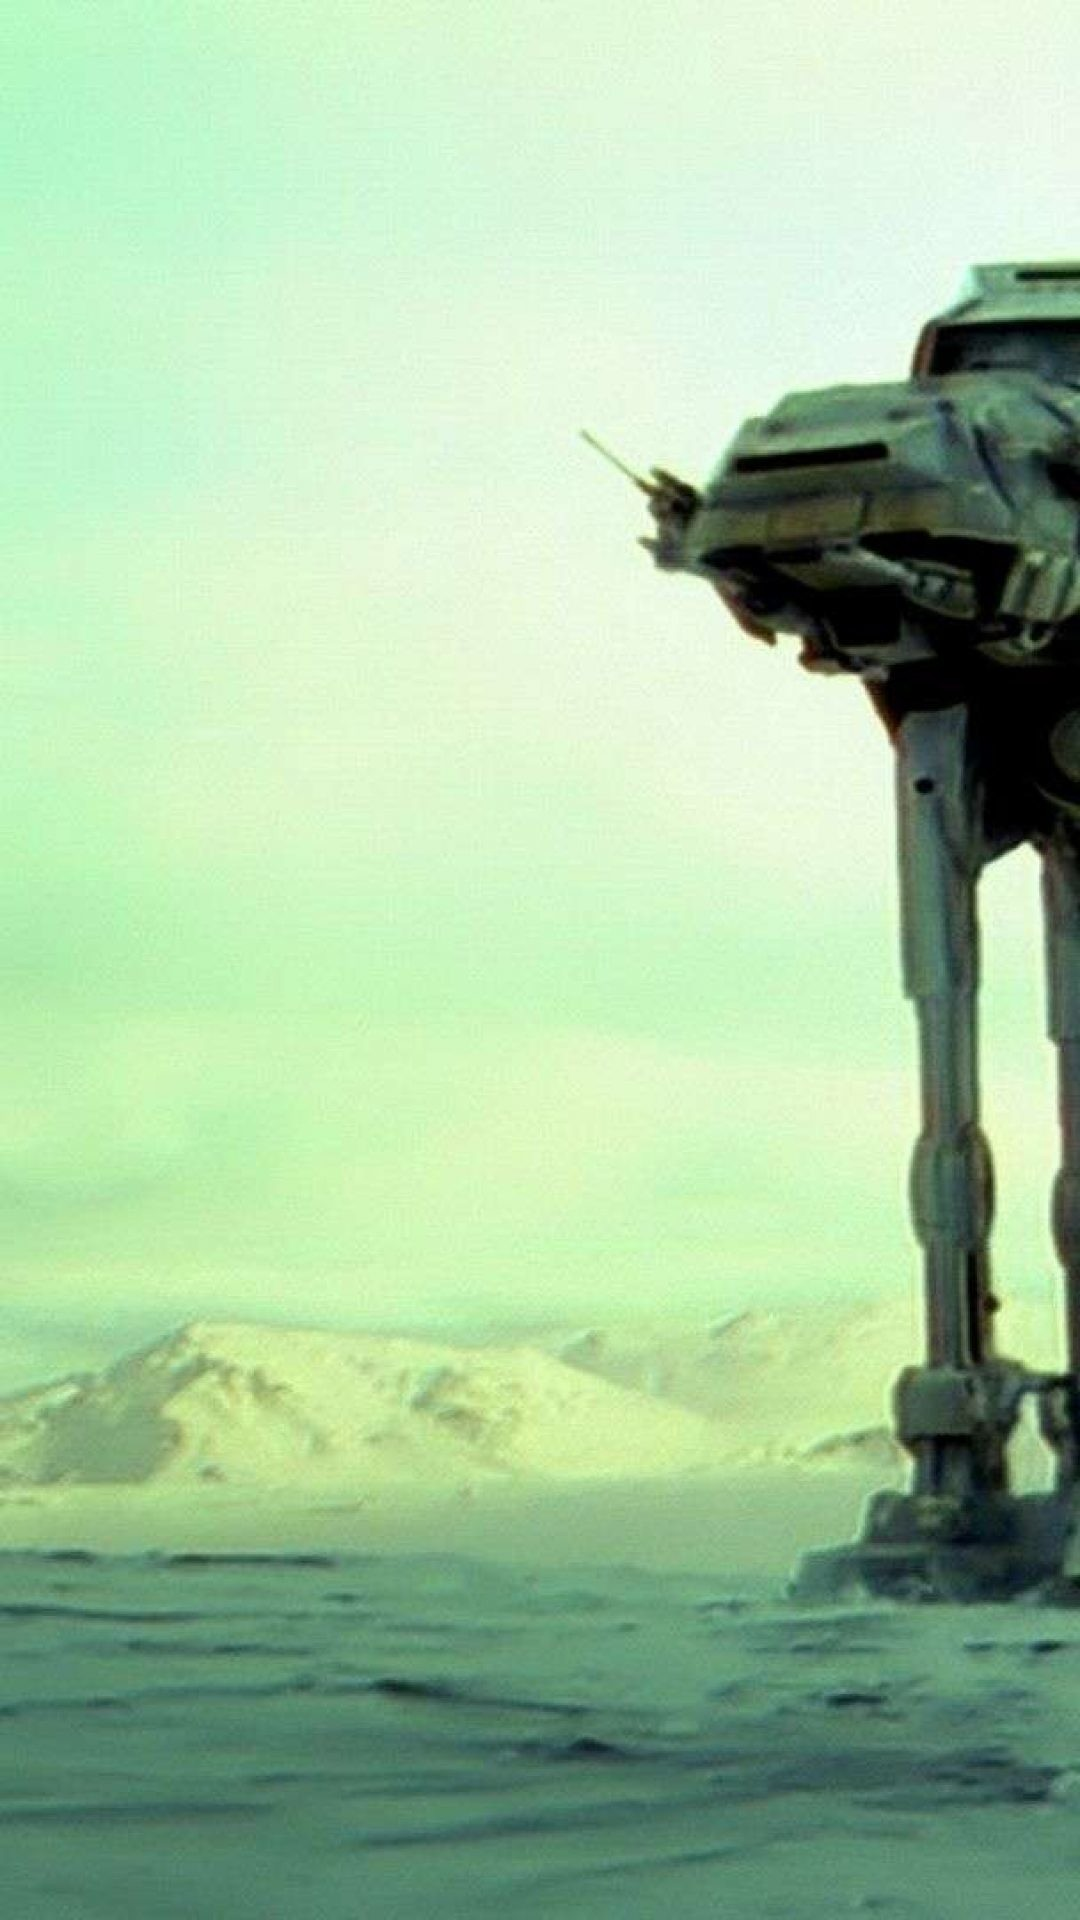 140 Star Wars Wallpaper 1080p